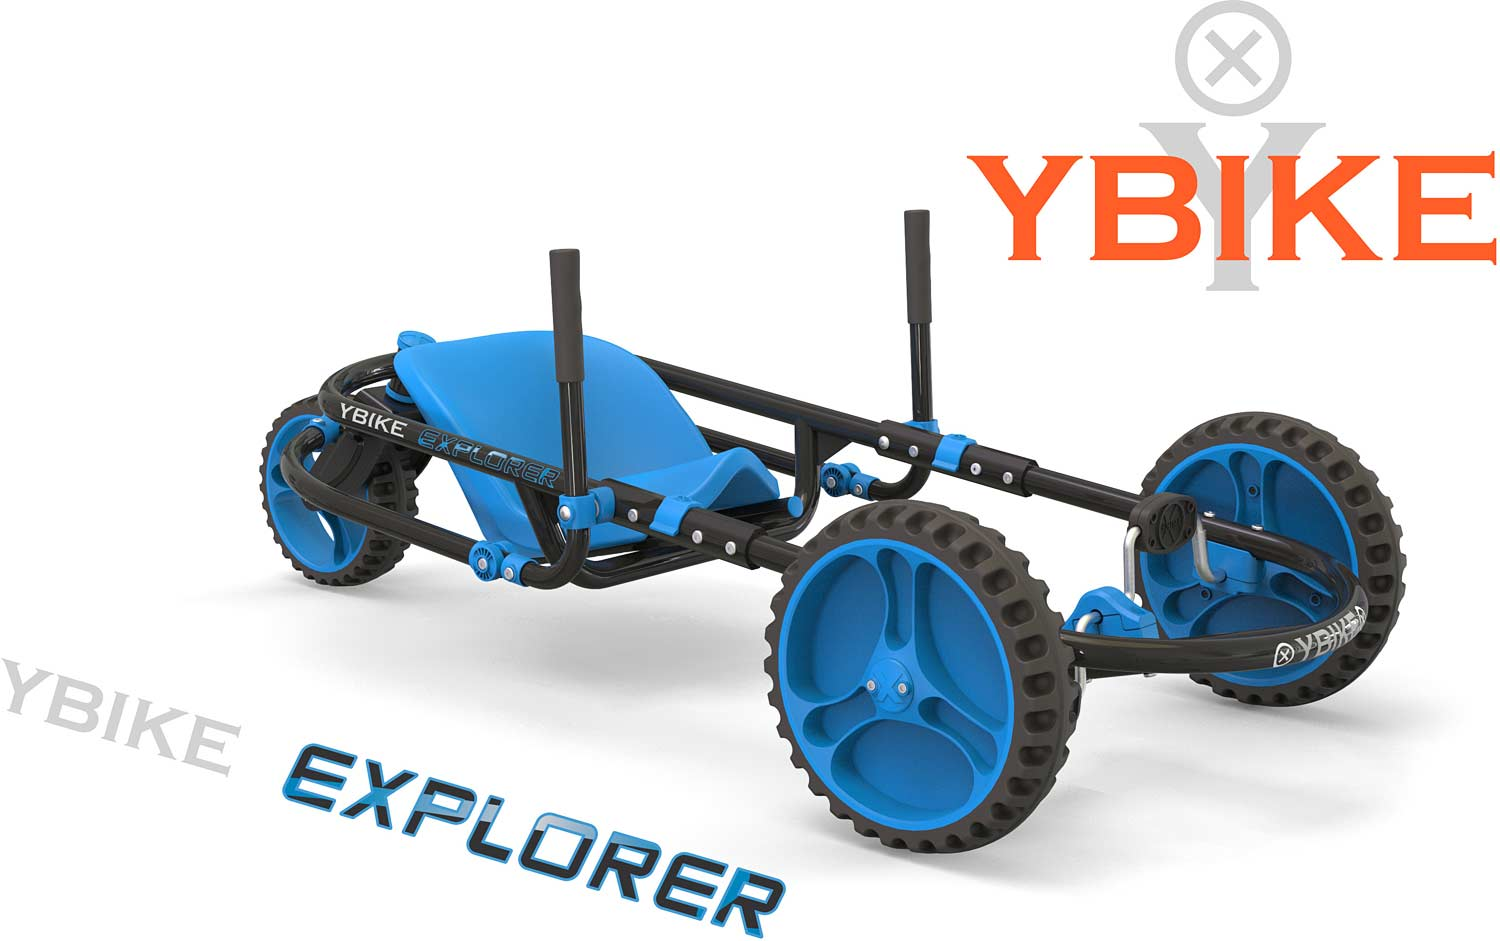 YBIKE Explorer 3.0 - Blue/Black